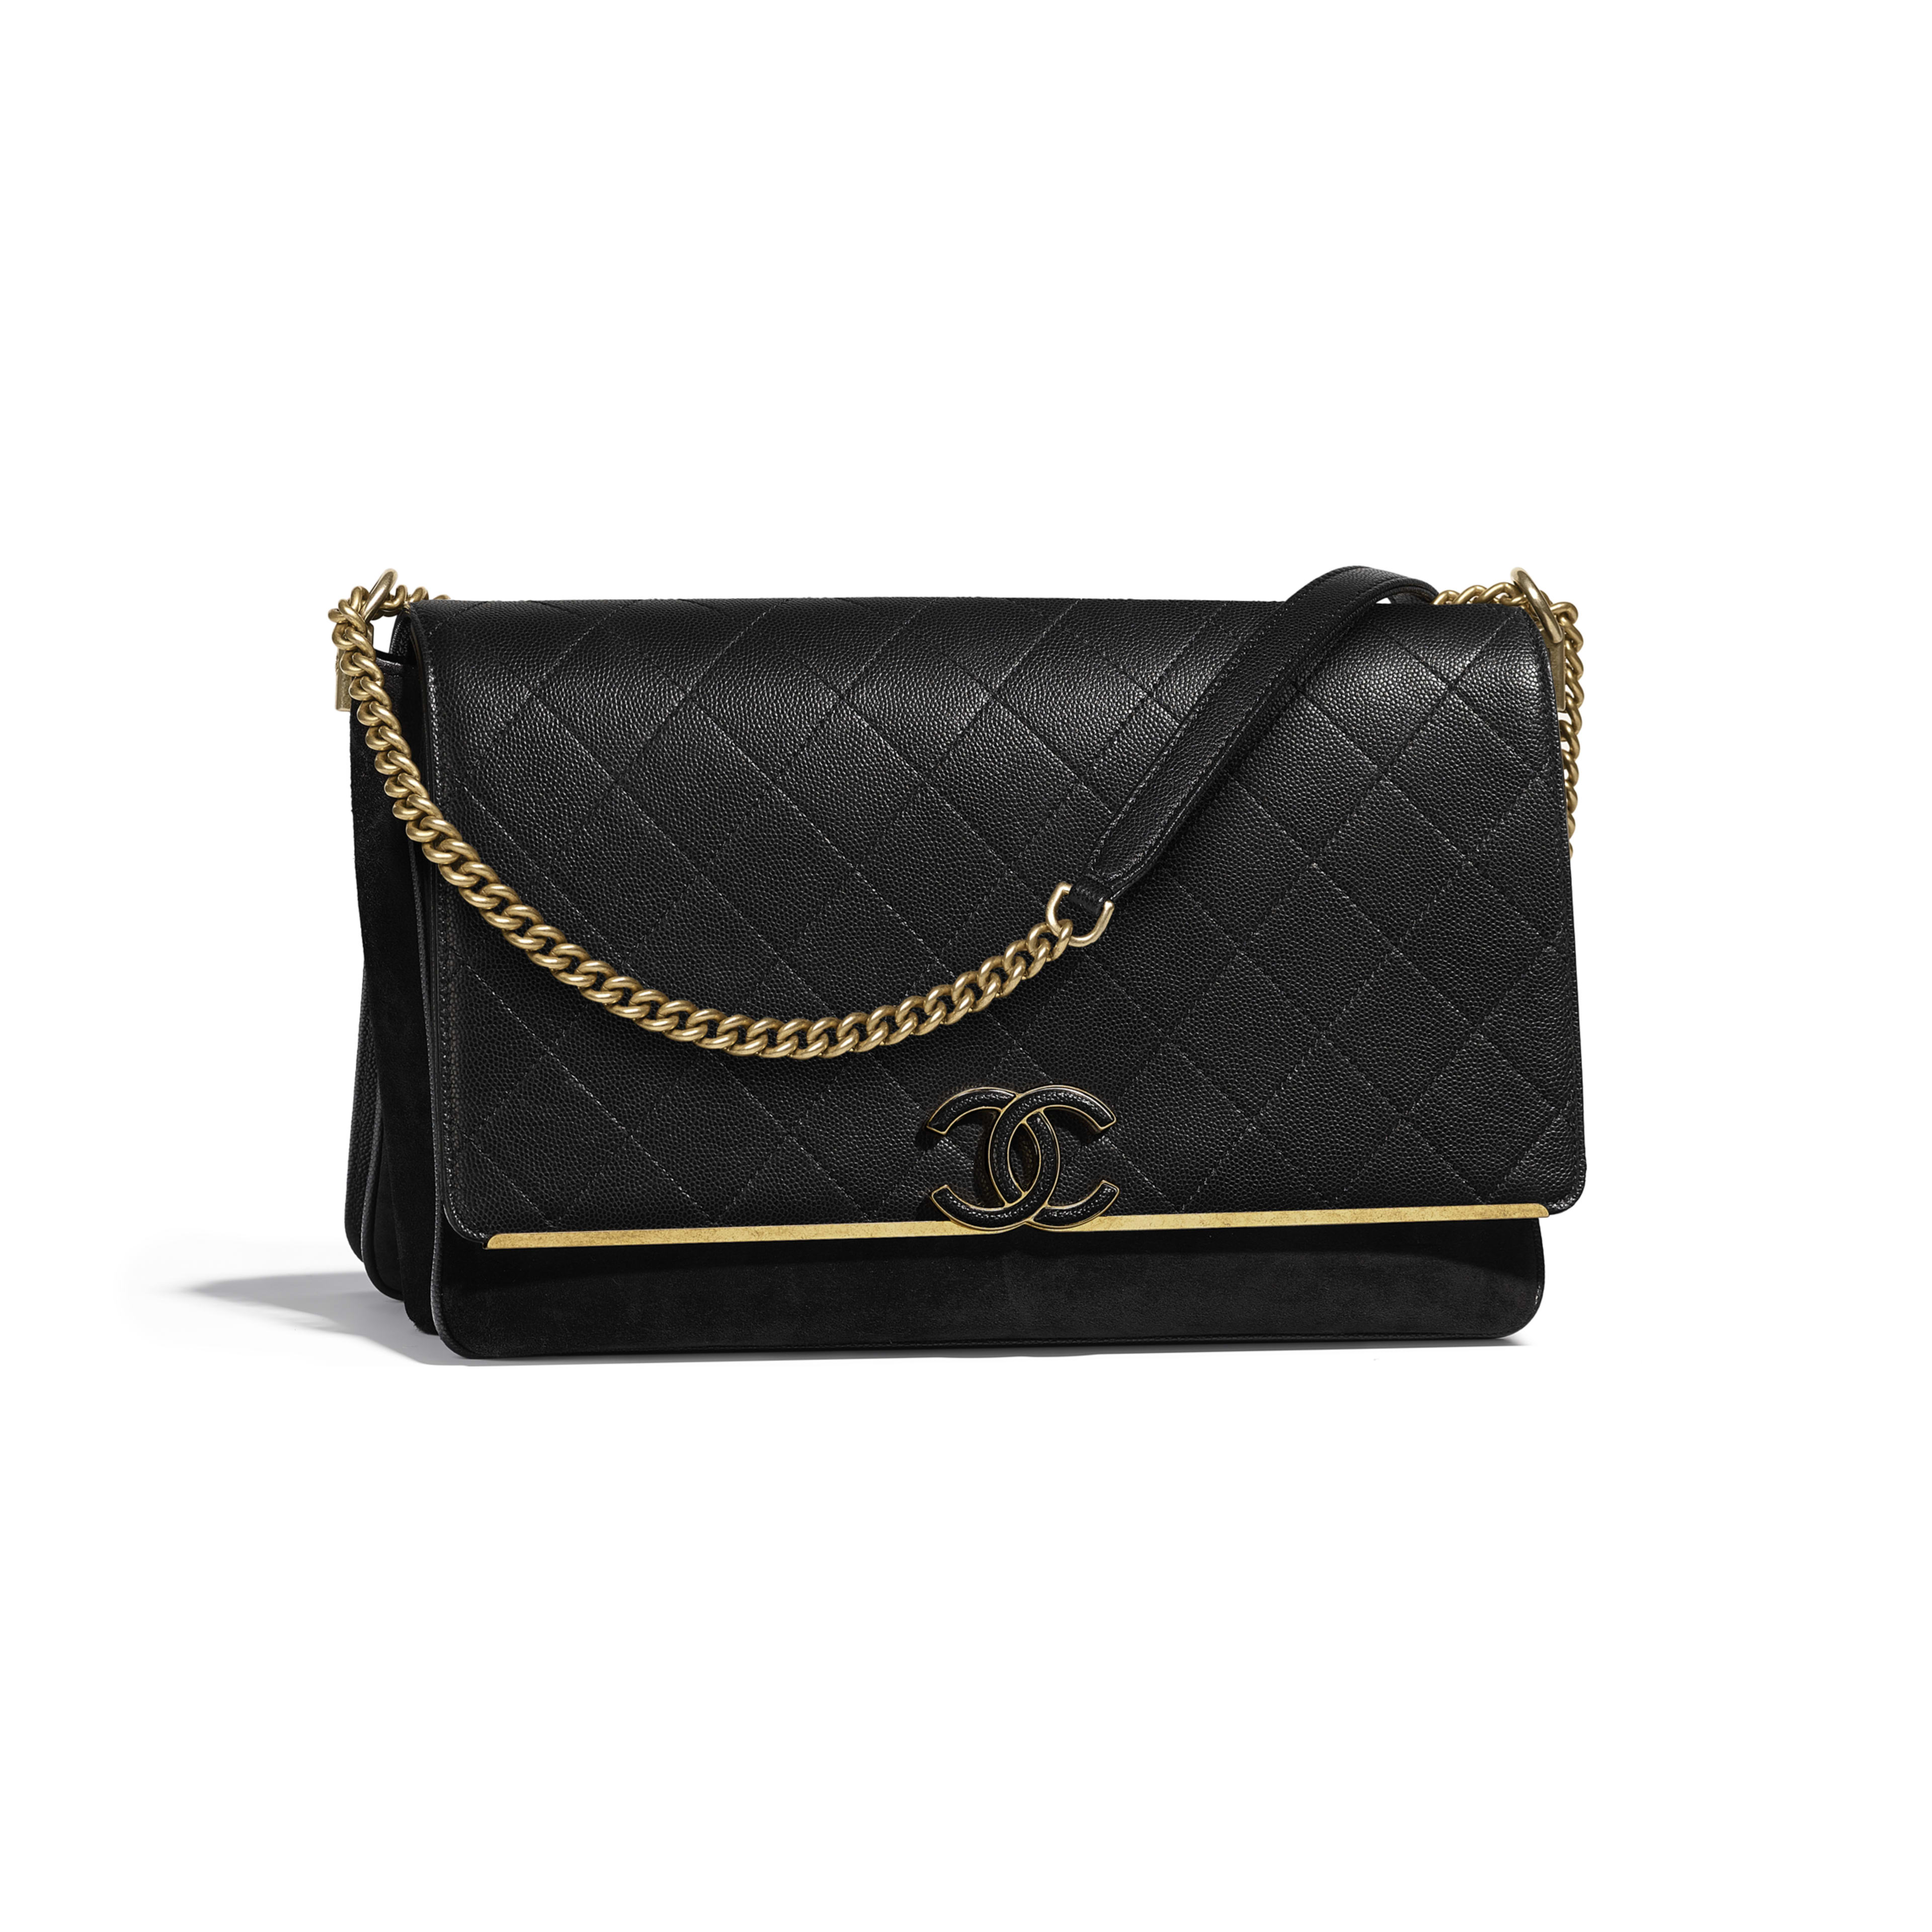 Flap Bag Black Grained Calfskin Suede Gold Tone Metal